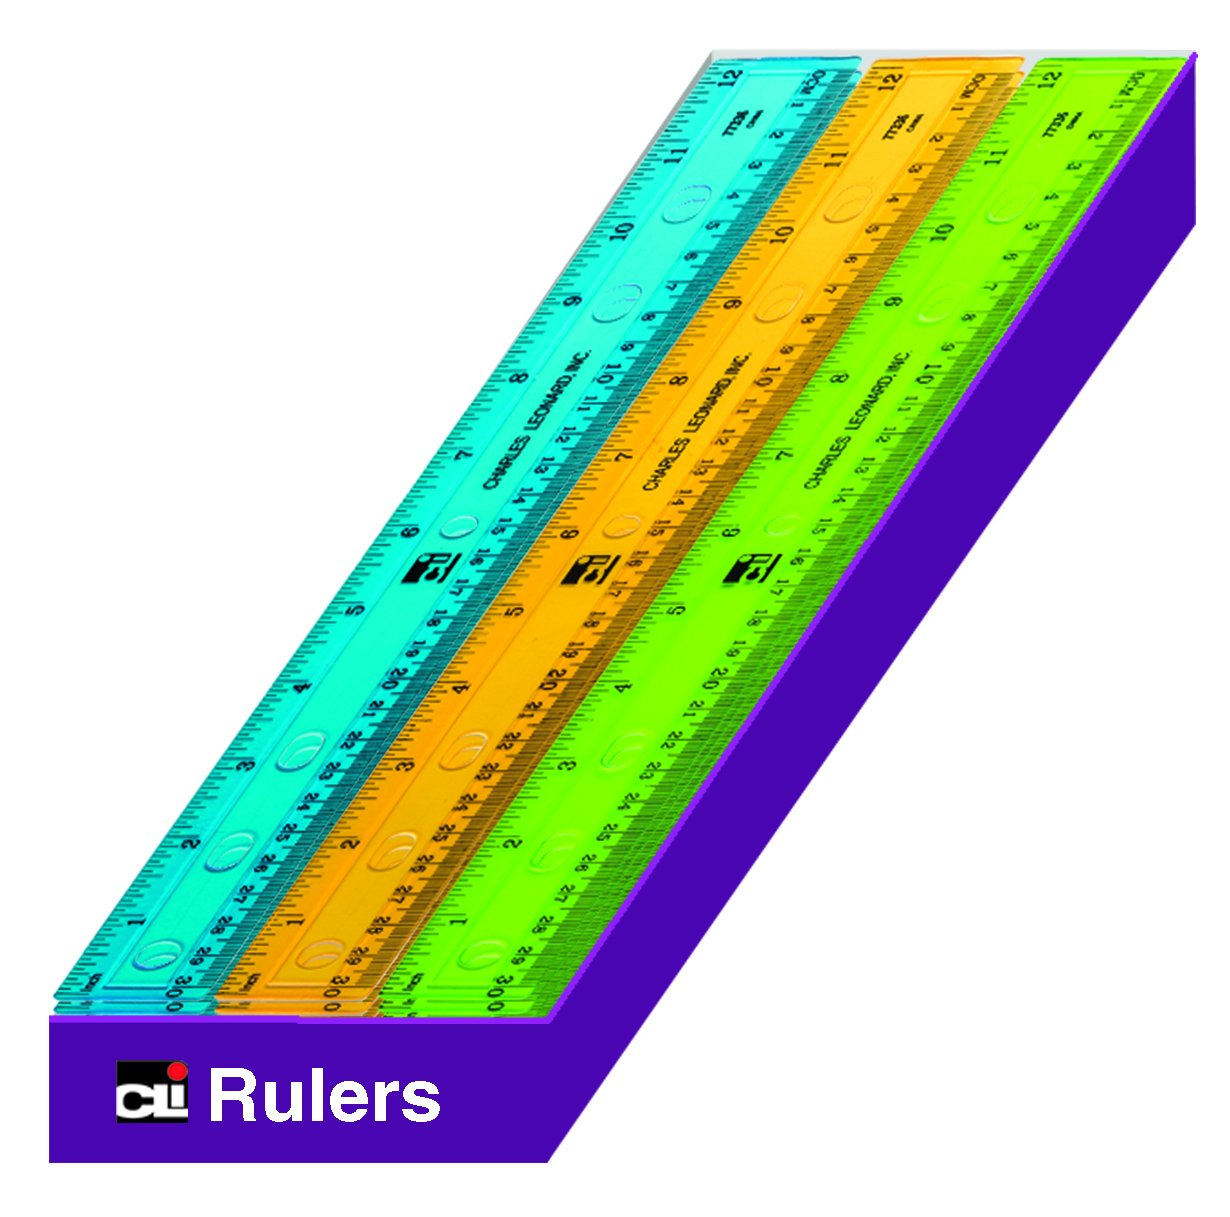 Charles Leonard Double Bevel Plastic Flat Rulers, Translucent Assorted Colors, 12 Inch, 36-Pack (80336-ST)